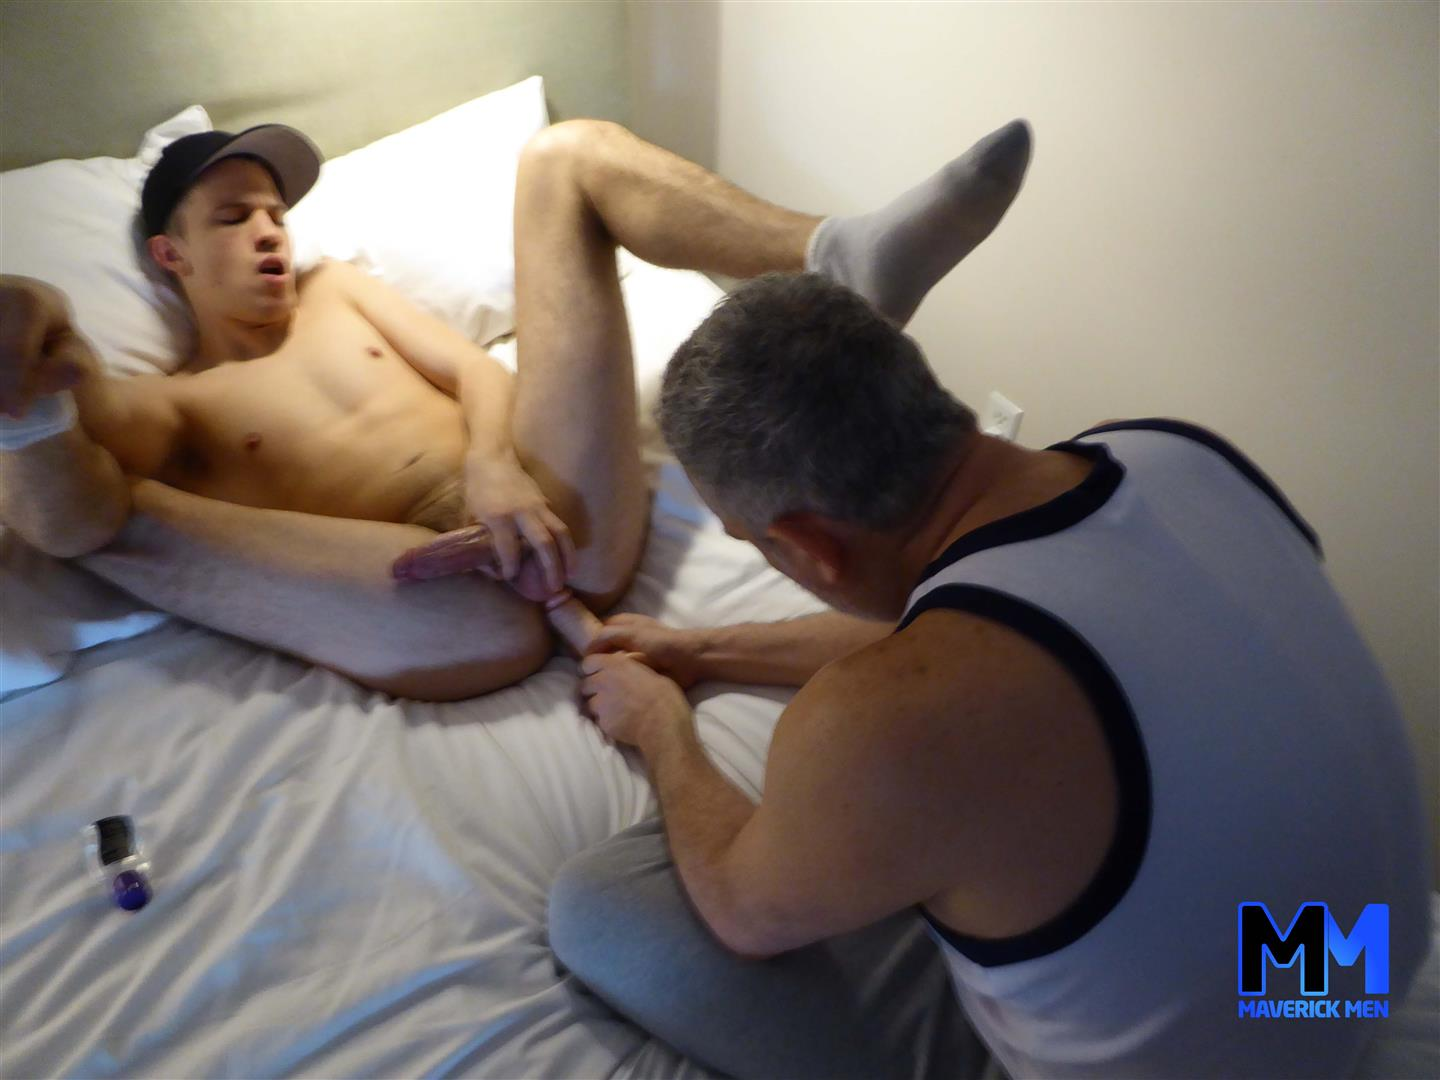 Maverick-Men-Joey-Twink-With-Hairy-Hole-Getting-Barebacked-4 The Maverick Men Cream A Young Guys Hairy Ass